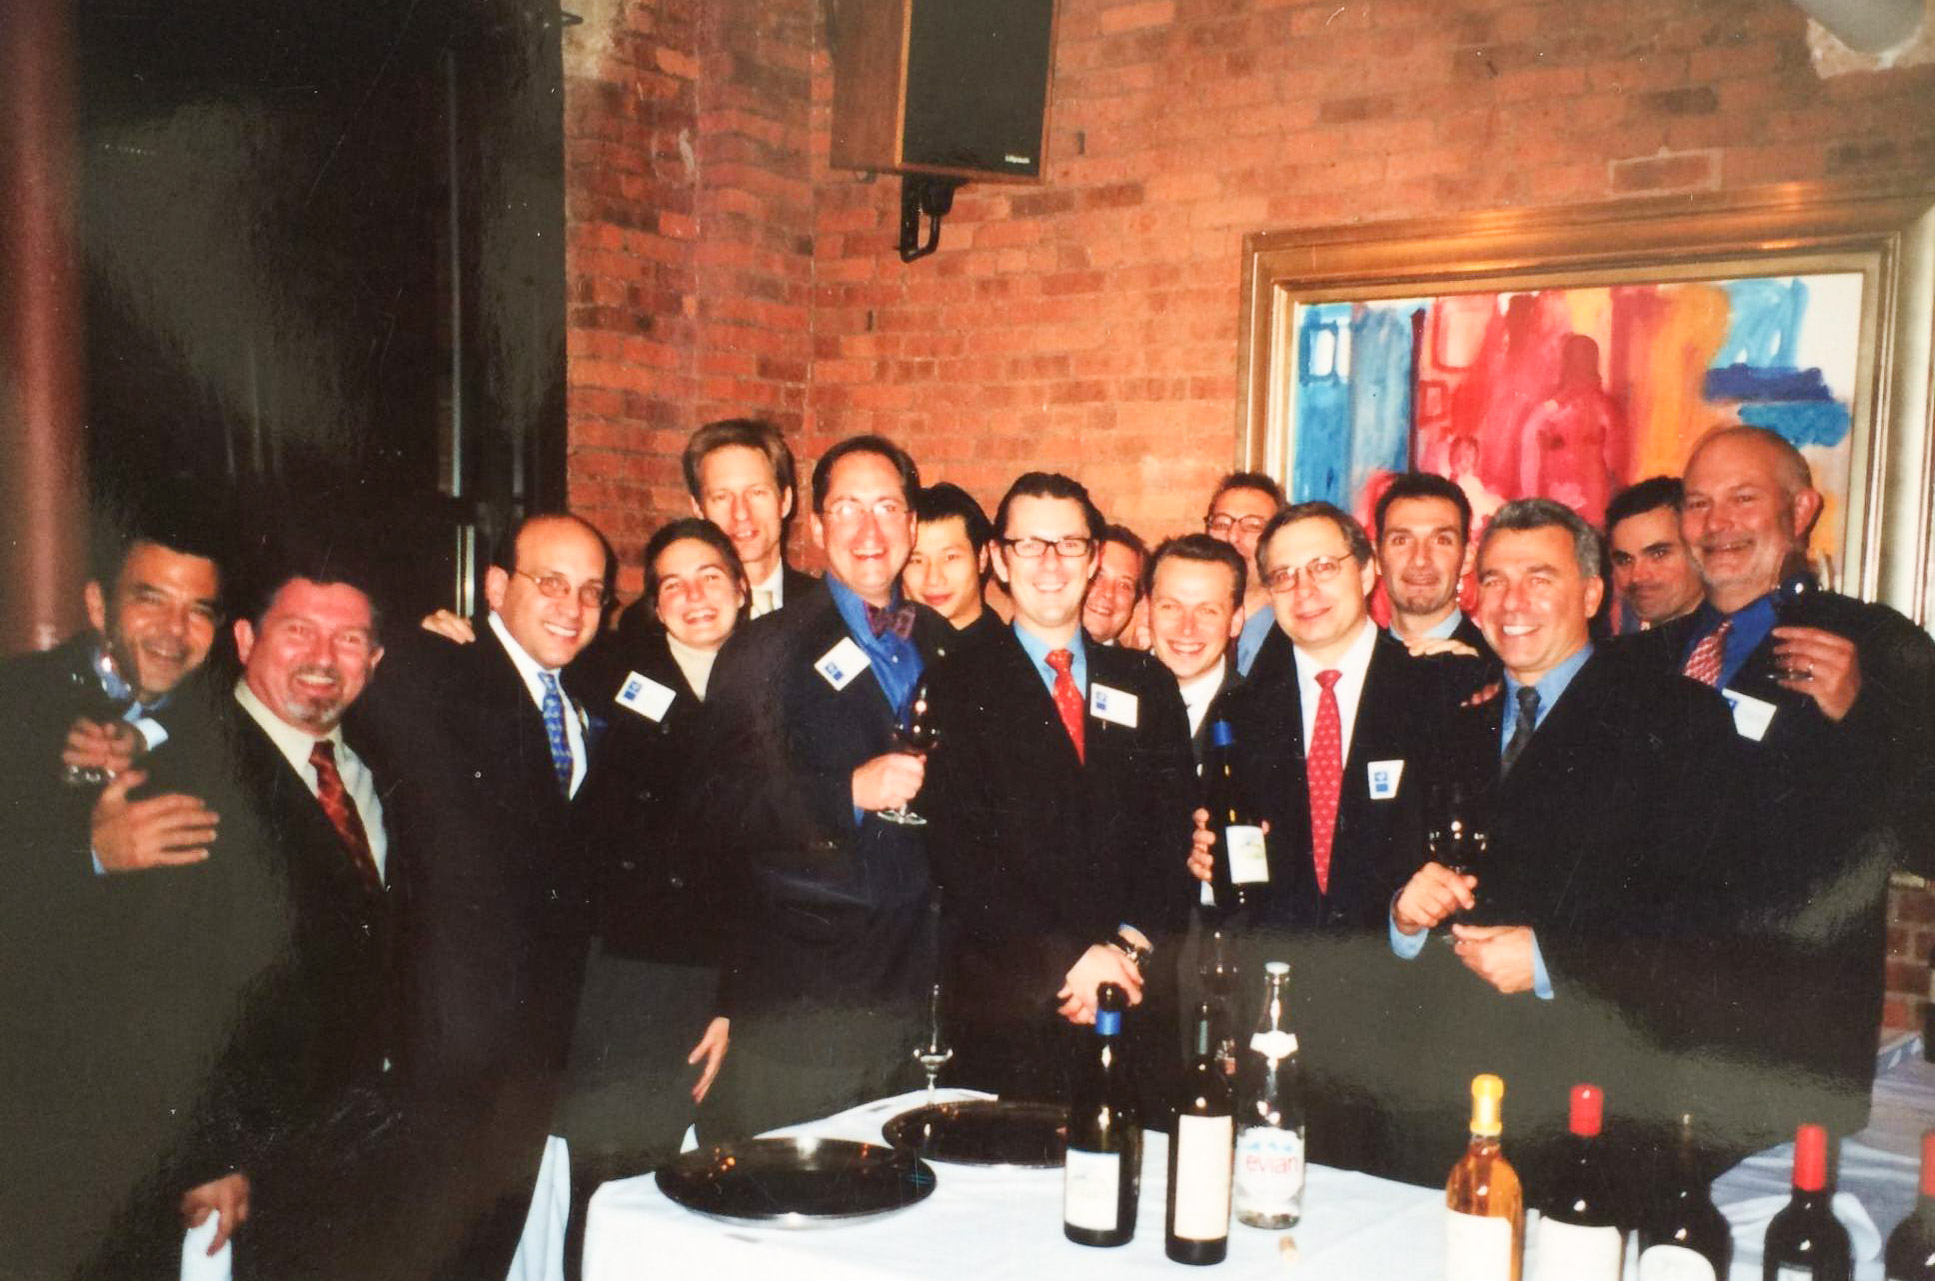 Stephen and Inez gather with other survivors and co-workers from Windows on the World, at a dinner held after 9/11.